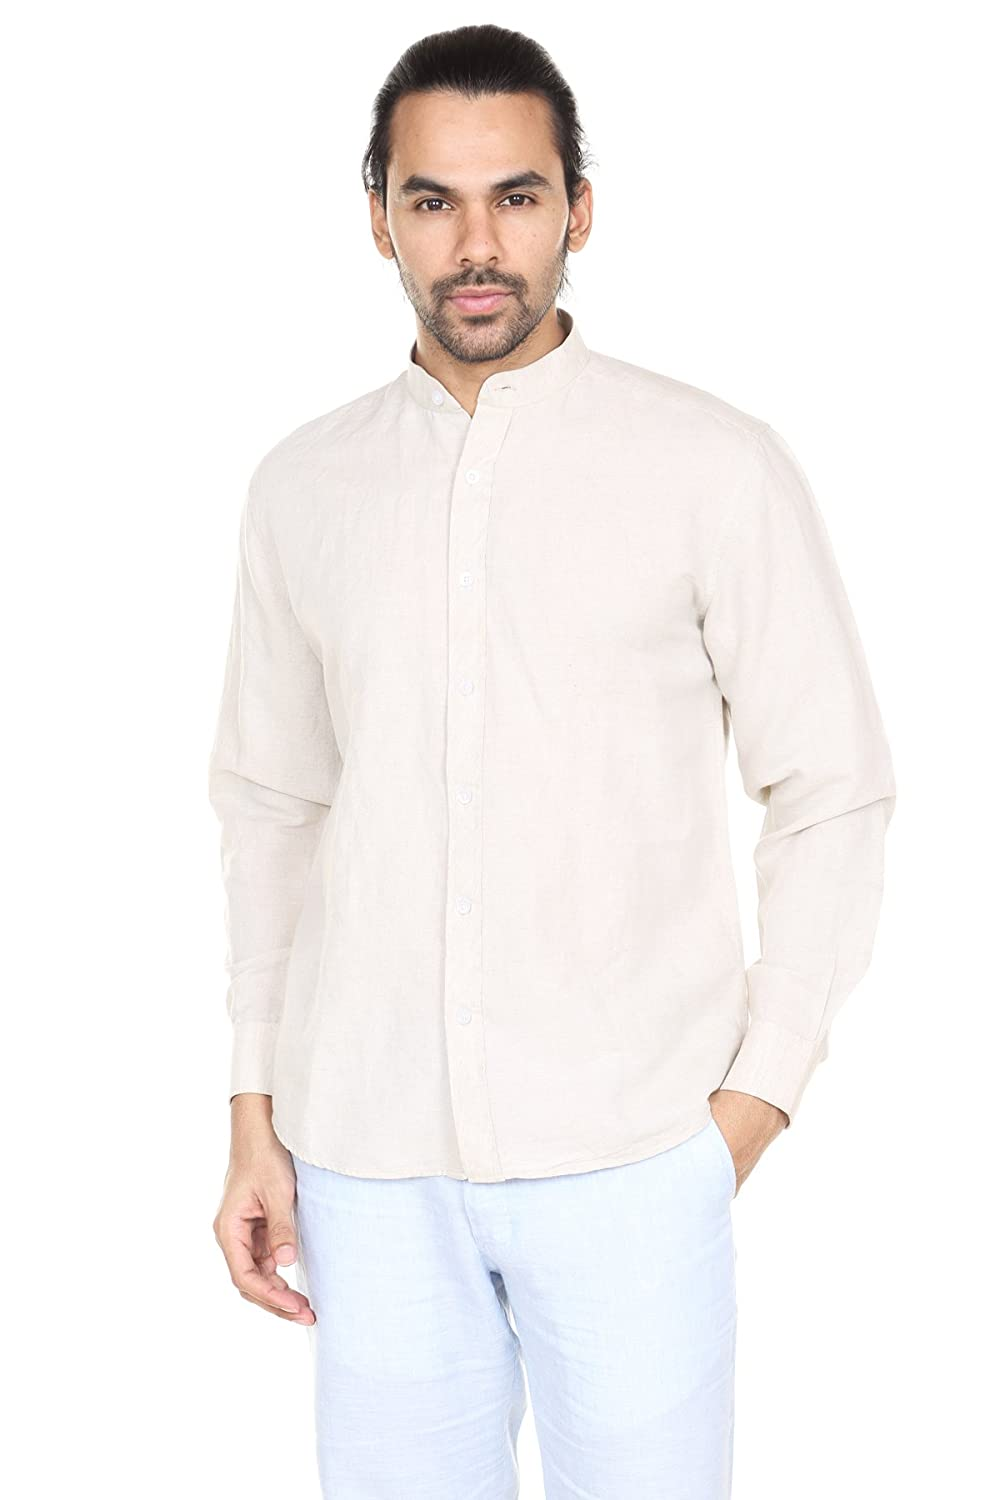 A.N.D. by Anita Dongre Mens Button down Shirt with Mandarin Collar ...